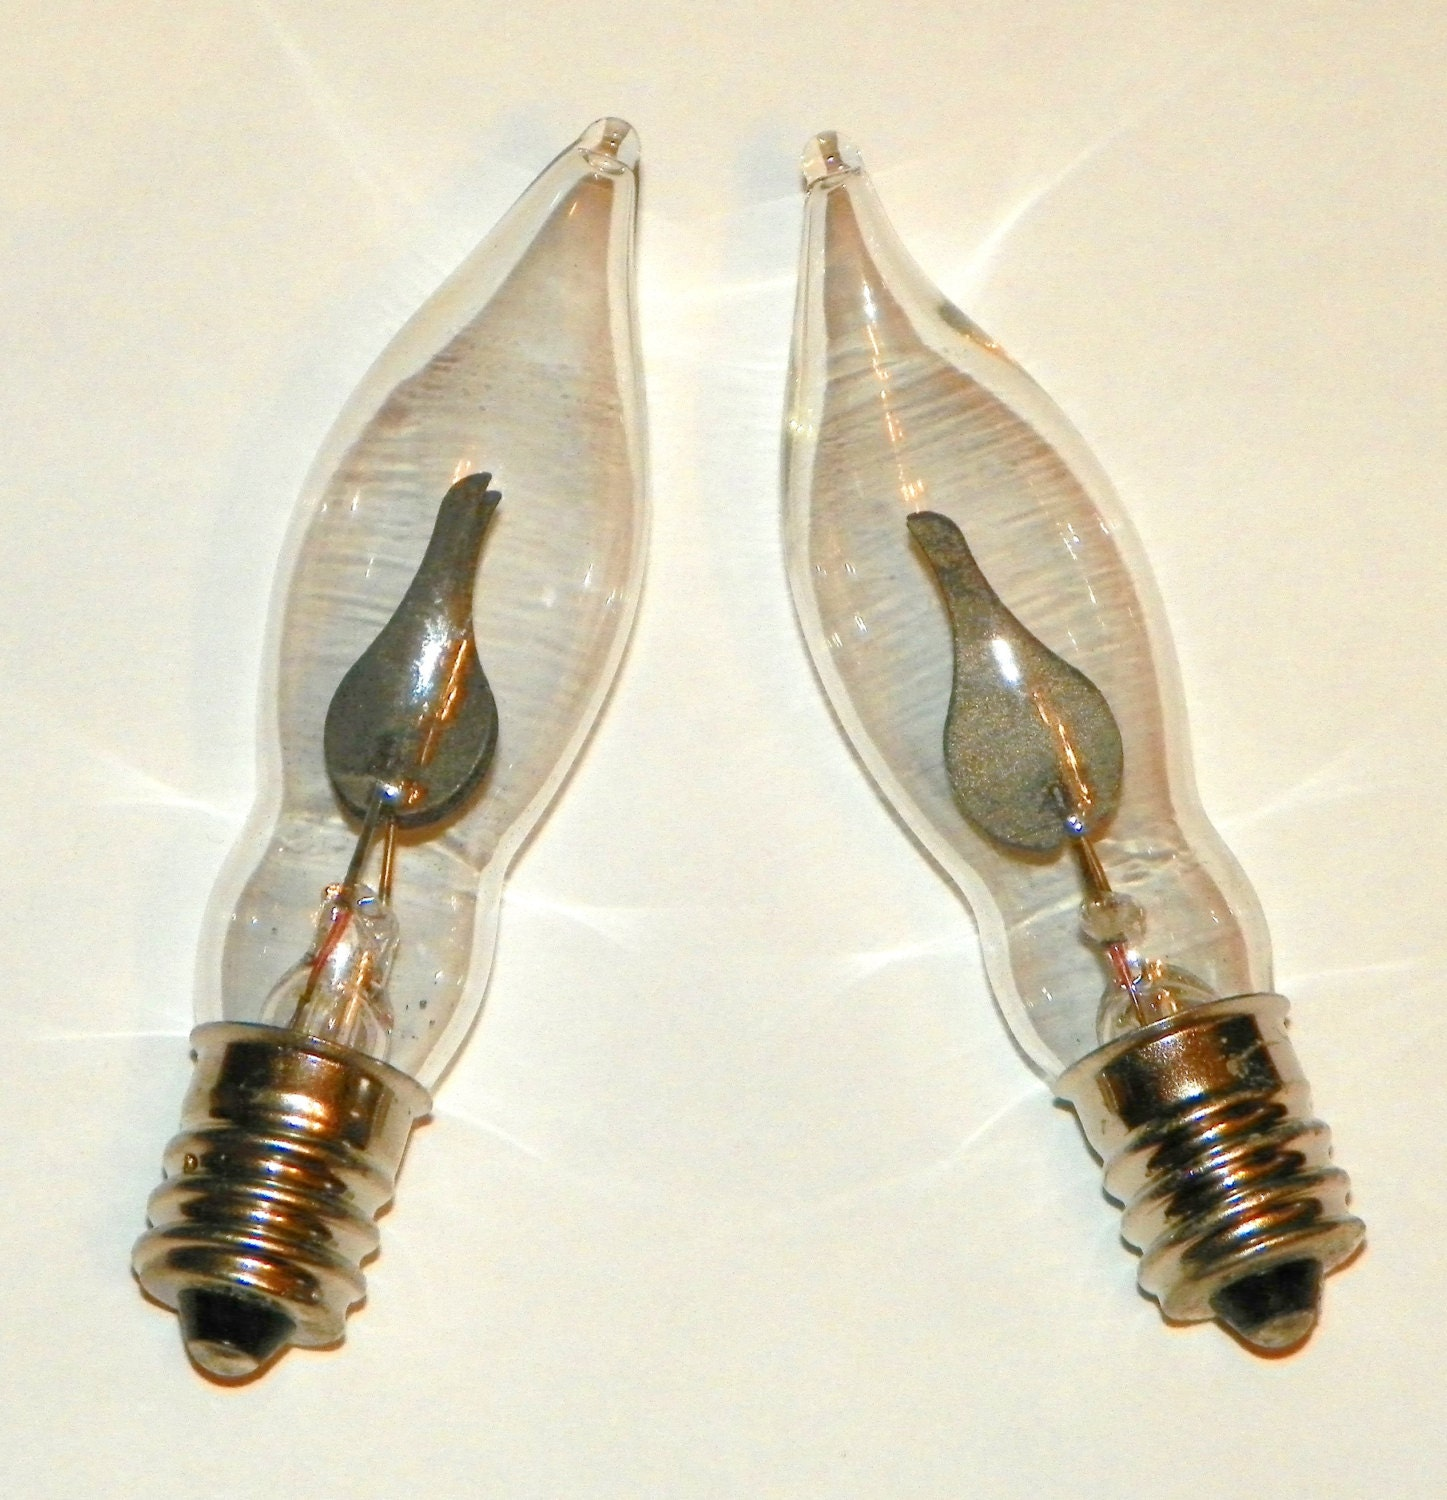 6 Flicker Bulbs Clear Glass Flame Shaped Glass Bulb With